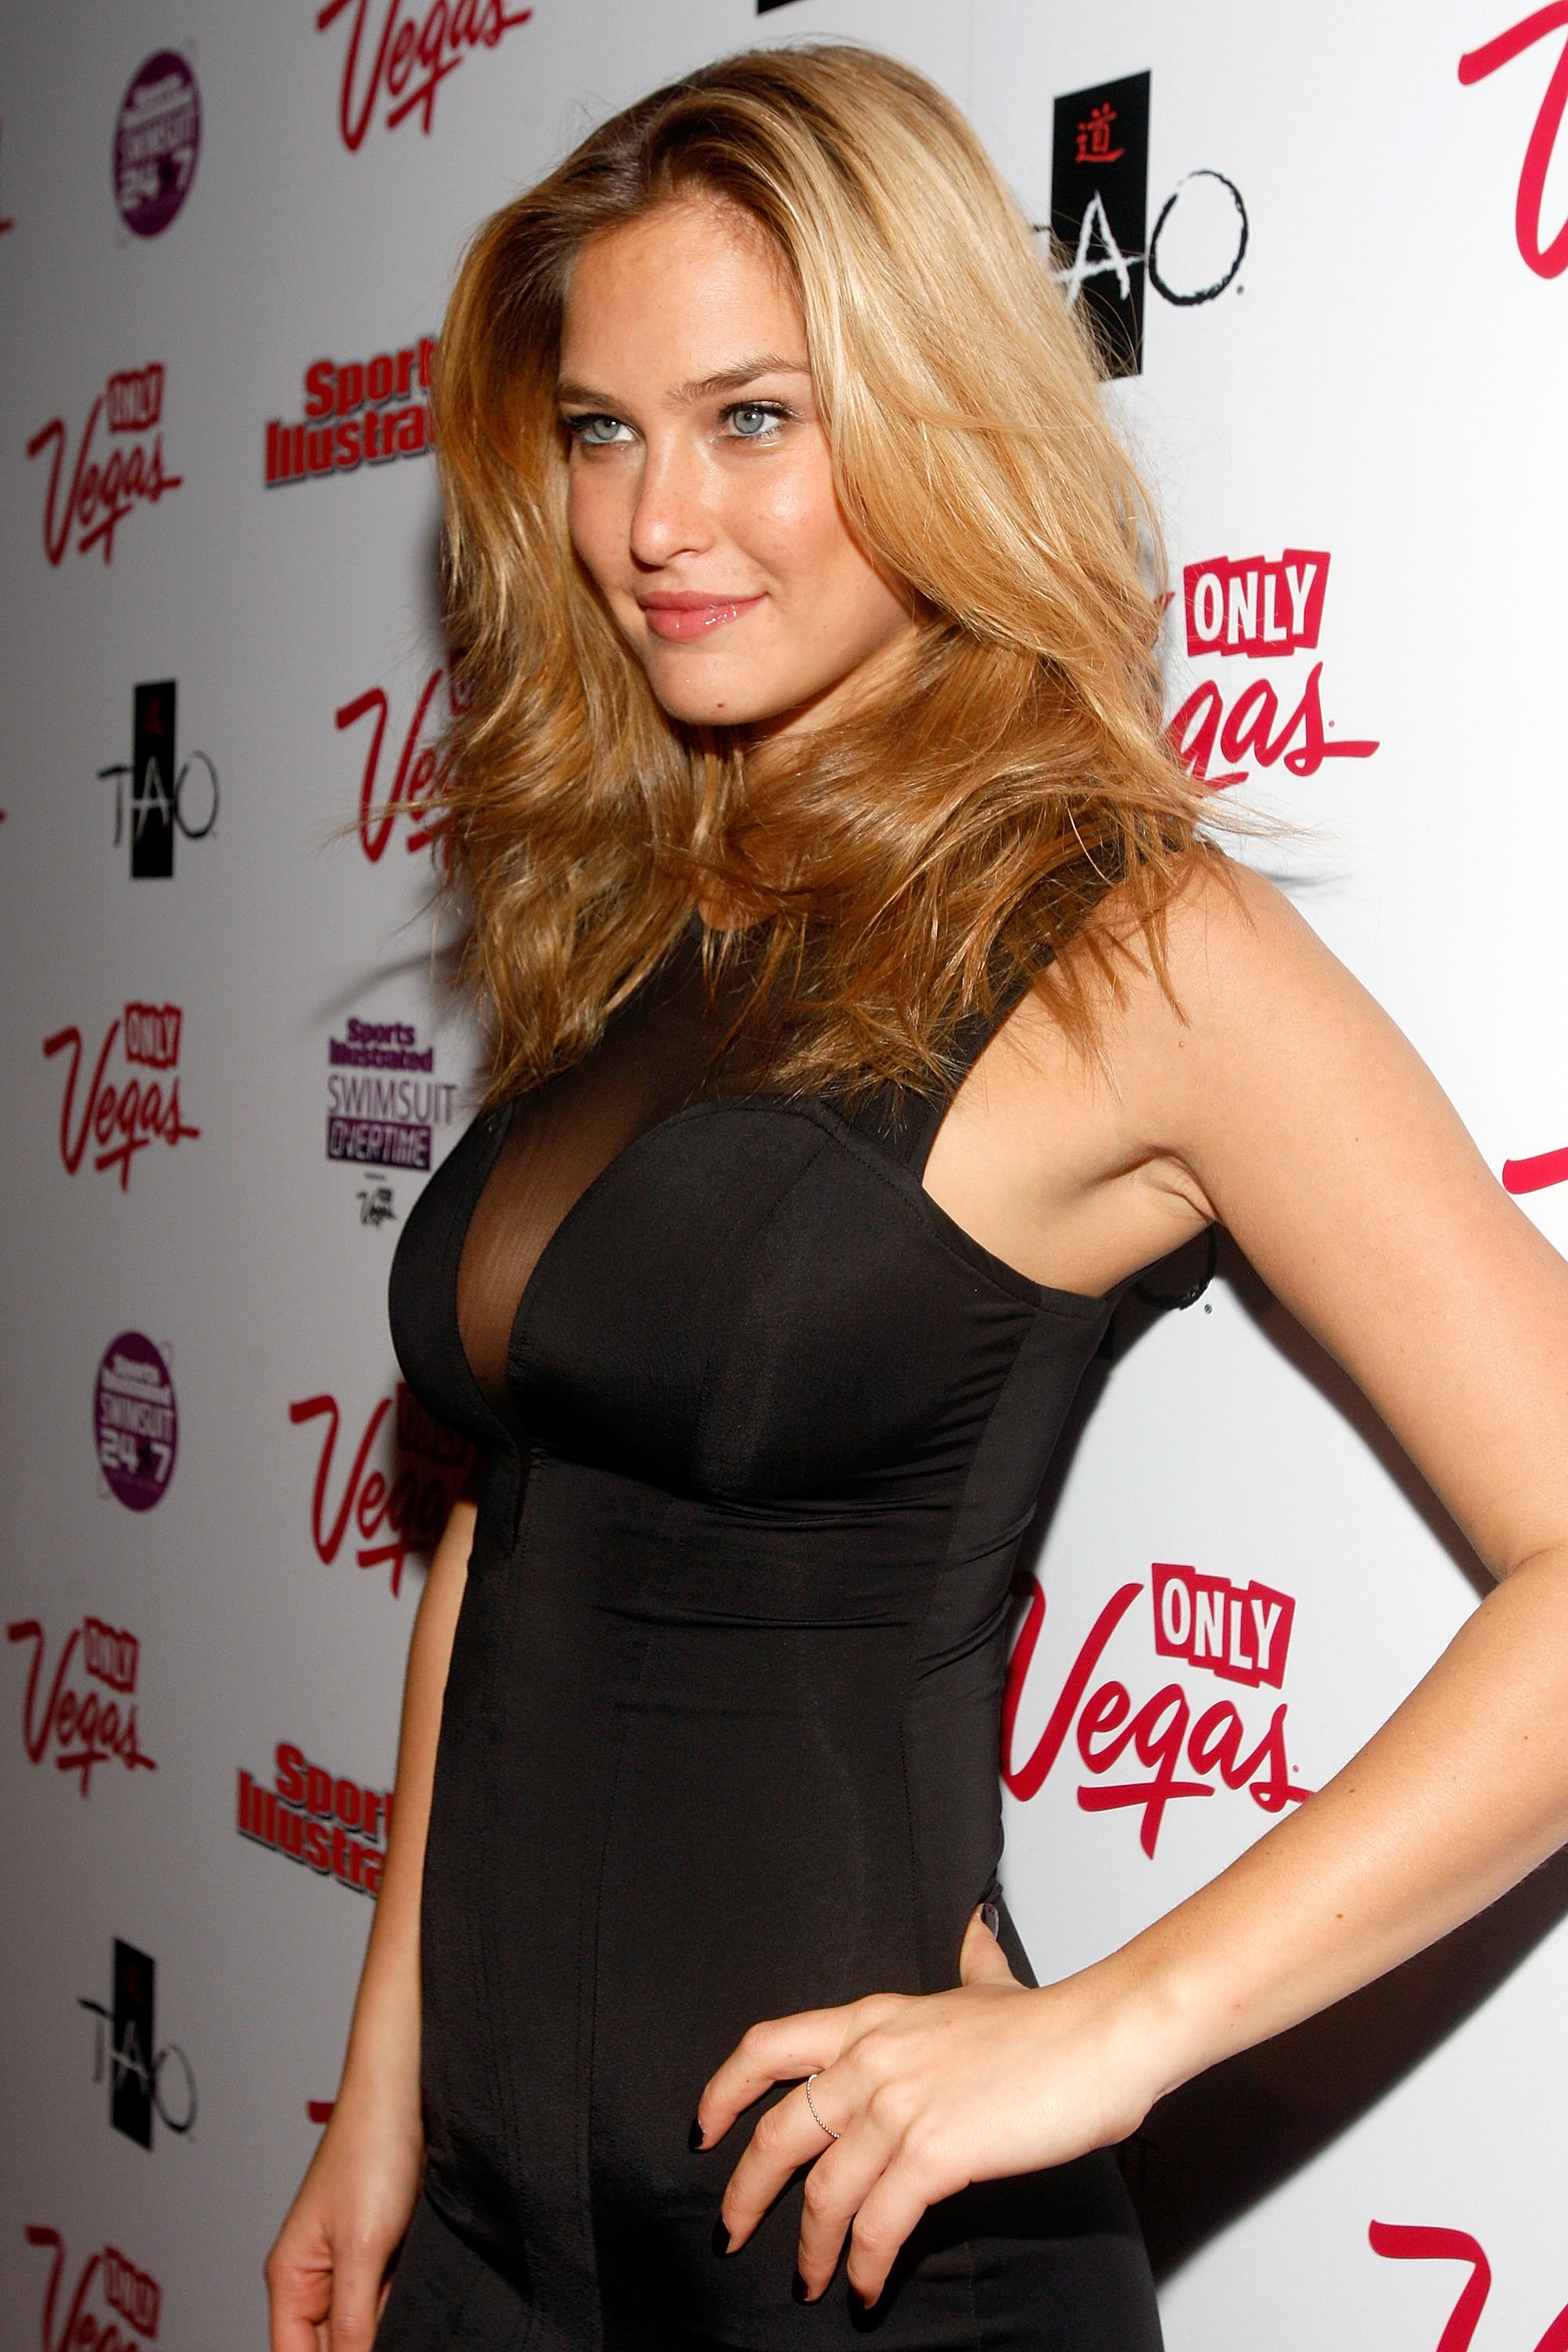 87298_Bar_Refaeli-Sports_Illustrated_Swimsuit_24.7_SI_Swimsuit_Overtime.7_SI_Swimsuit_Overtime-028653_122_582lo.jpg